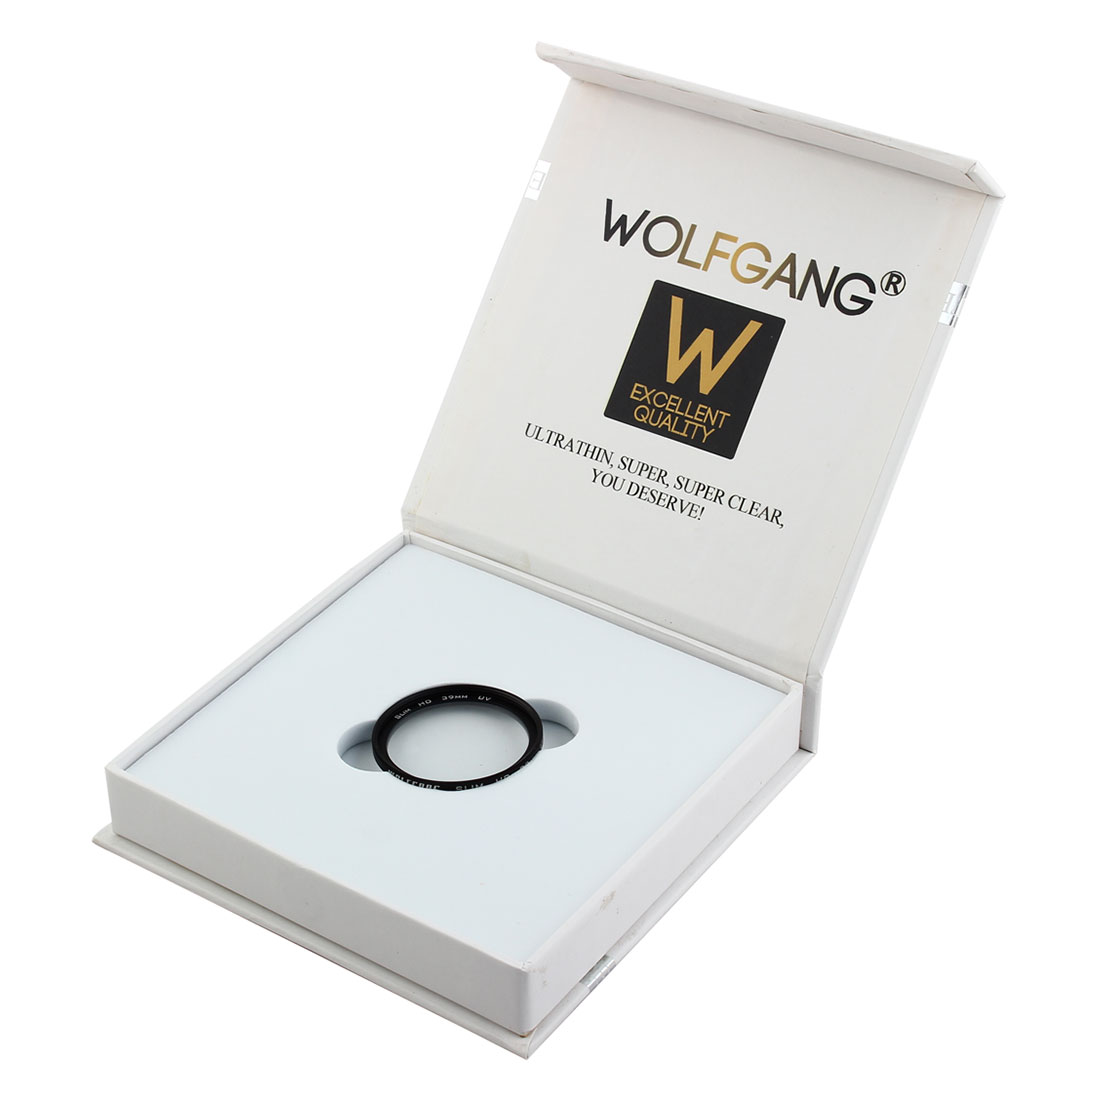 WOLFGANG Authorized 39mm Ultraviolet HD UV Filter Lens Protector for Digital Camera